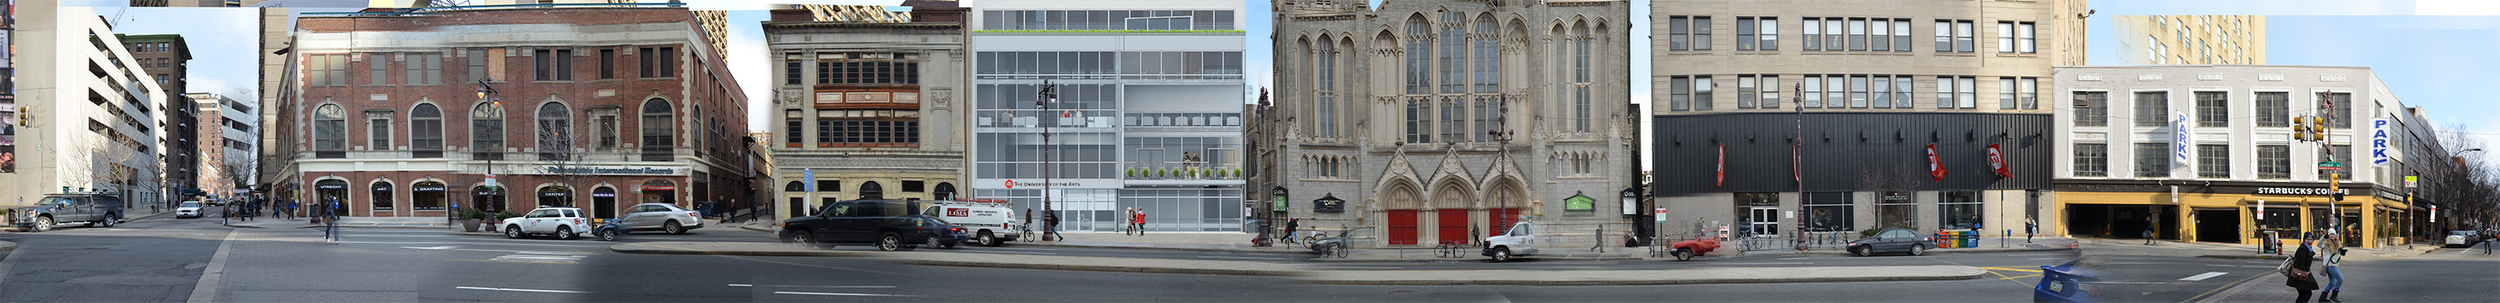 BROAD STREET SITE CONTEXT AND ELEVATION